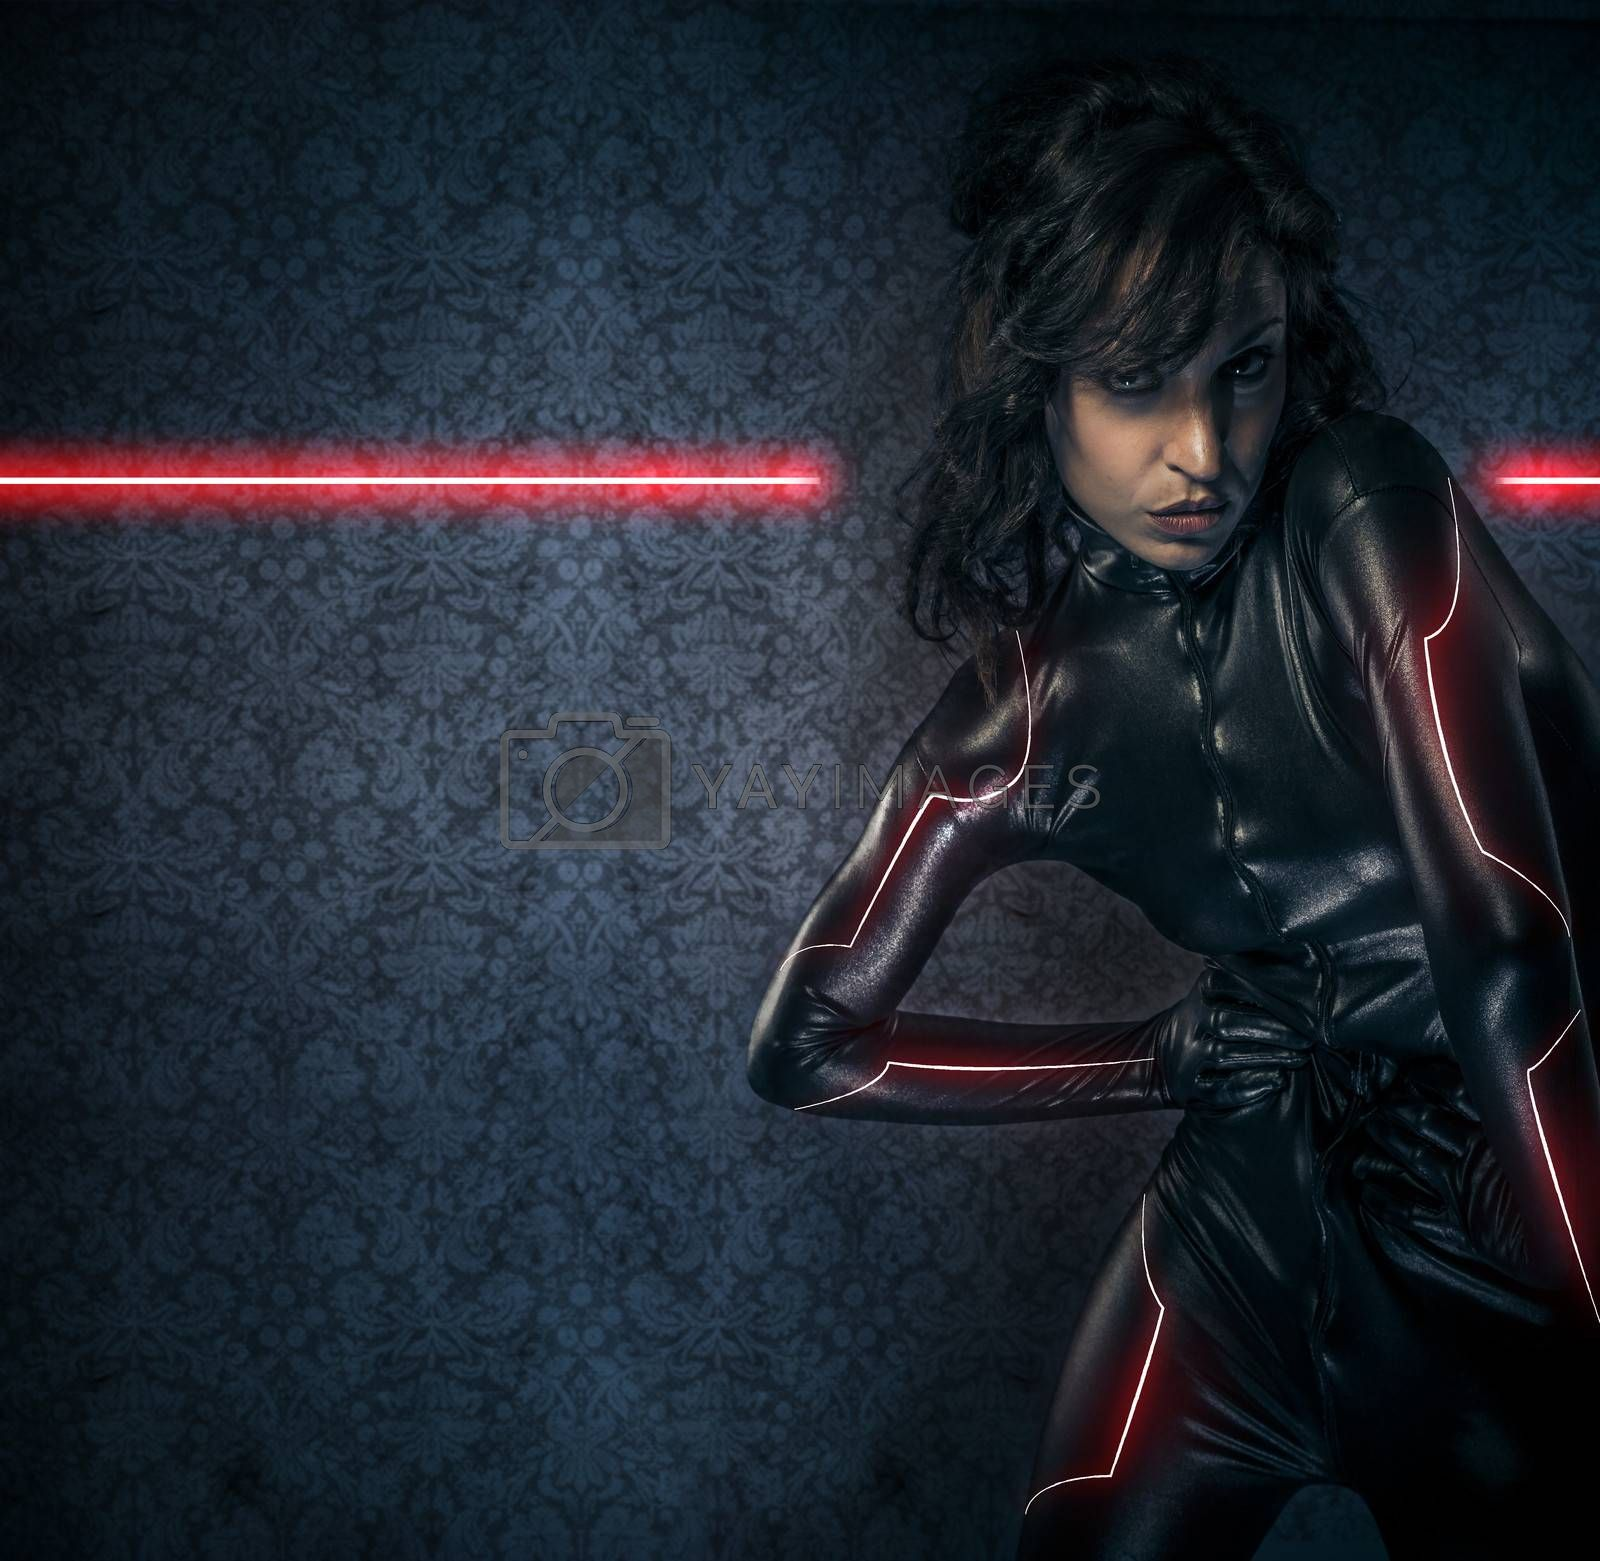 Sexy brunette in black latex costume , science fiction scene, fantasy armor with red lights